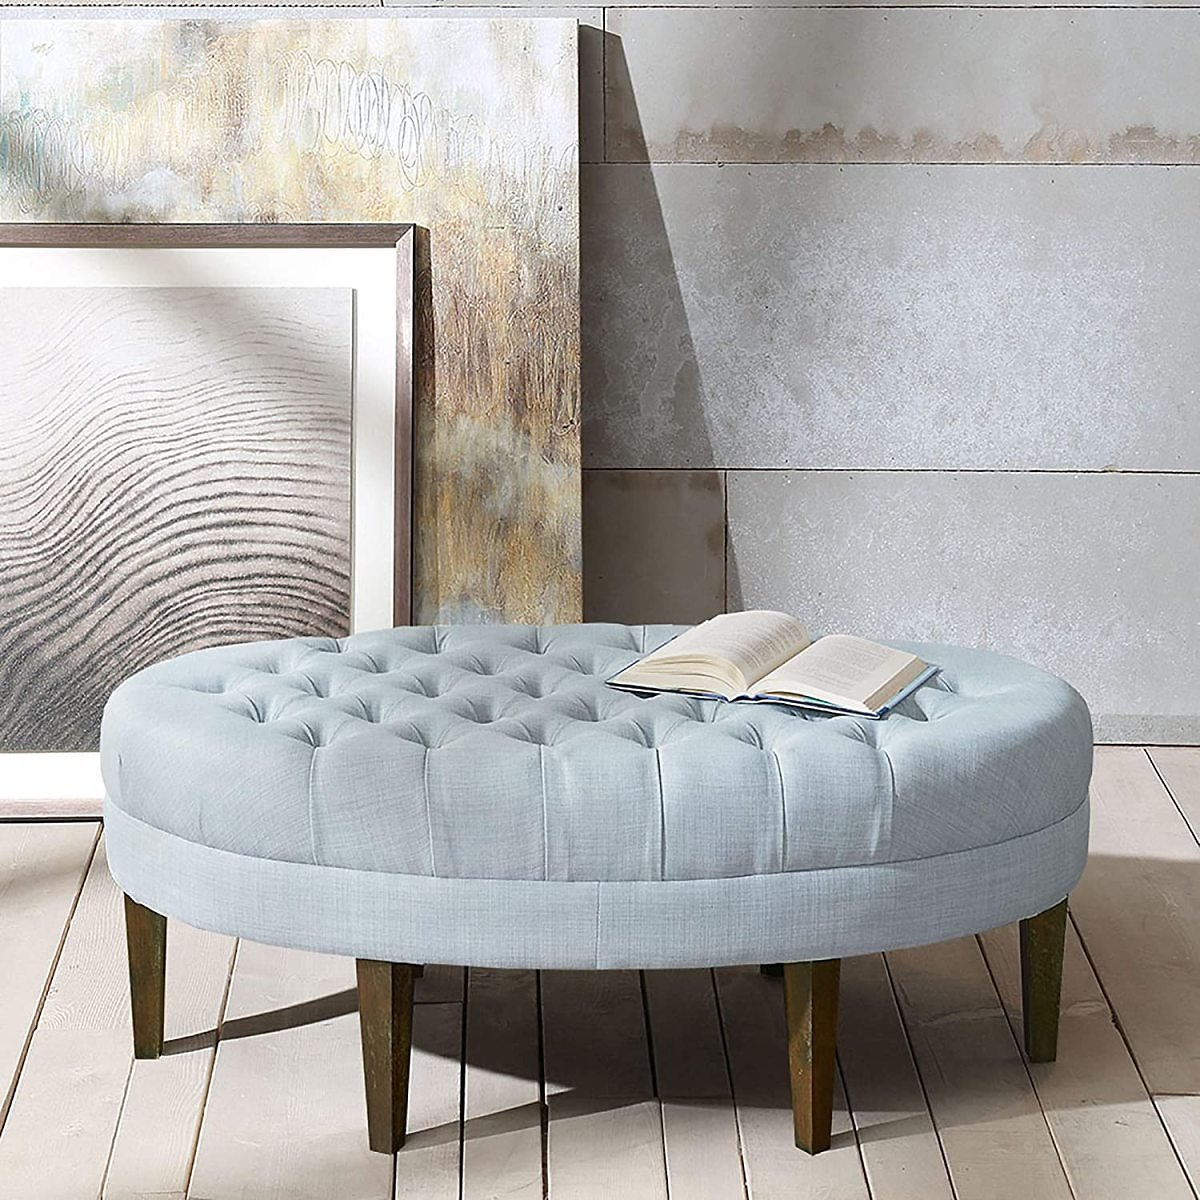 Madison Park Martin Oval Surfboard Tufted Coffee Table Ottoman , 2 Colors